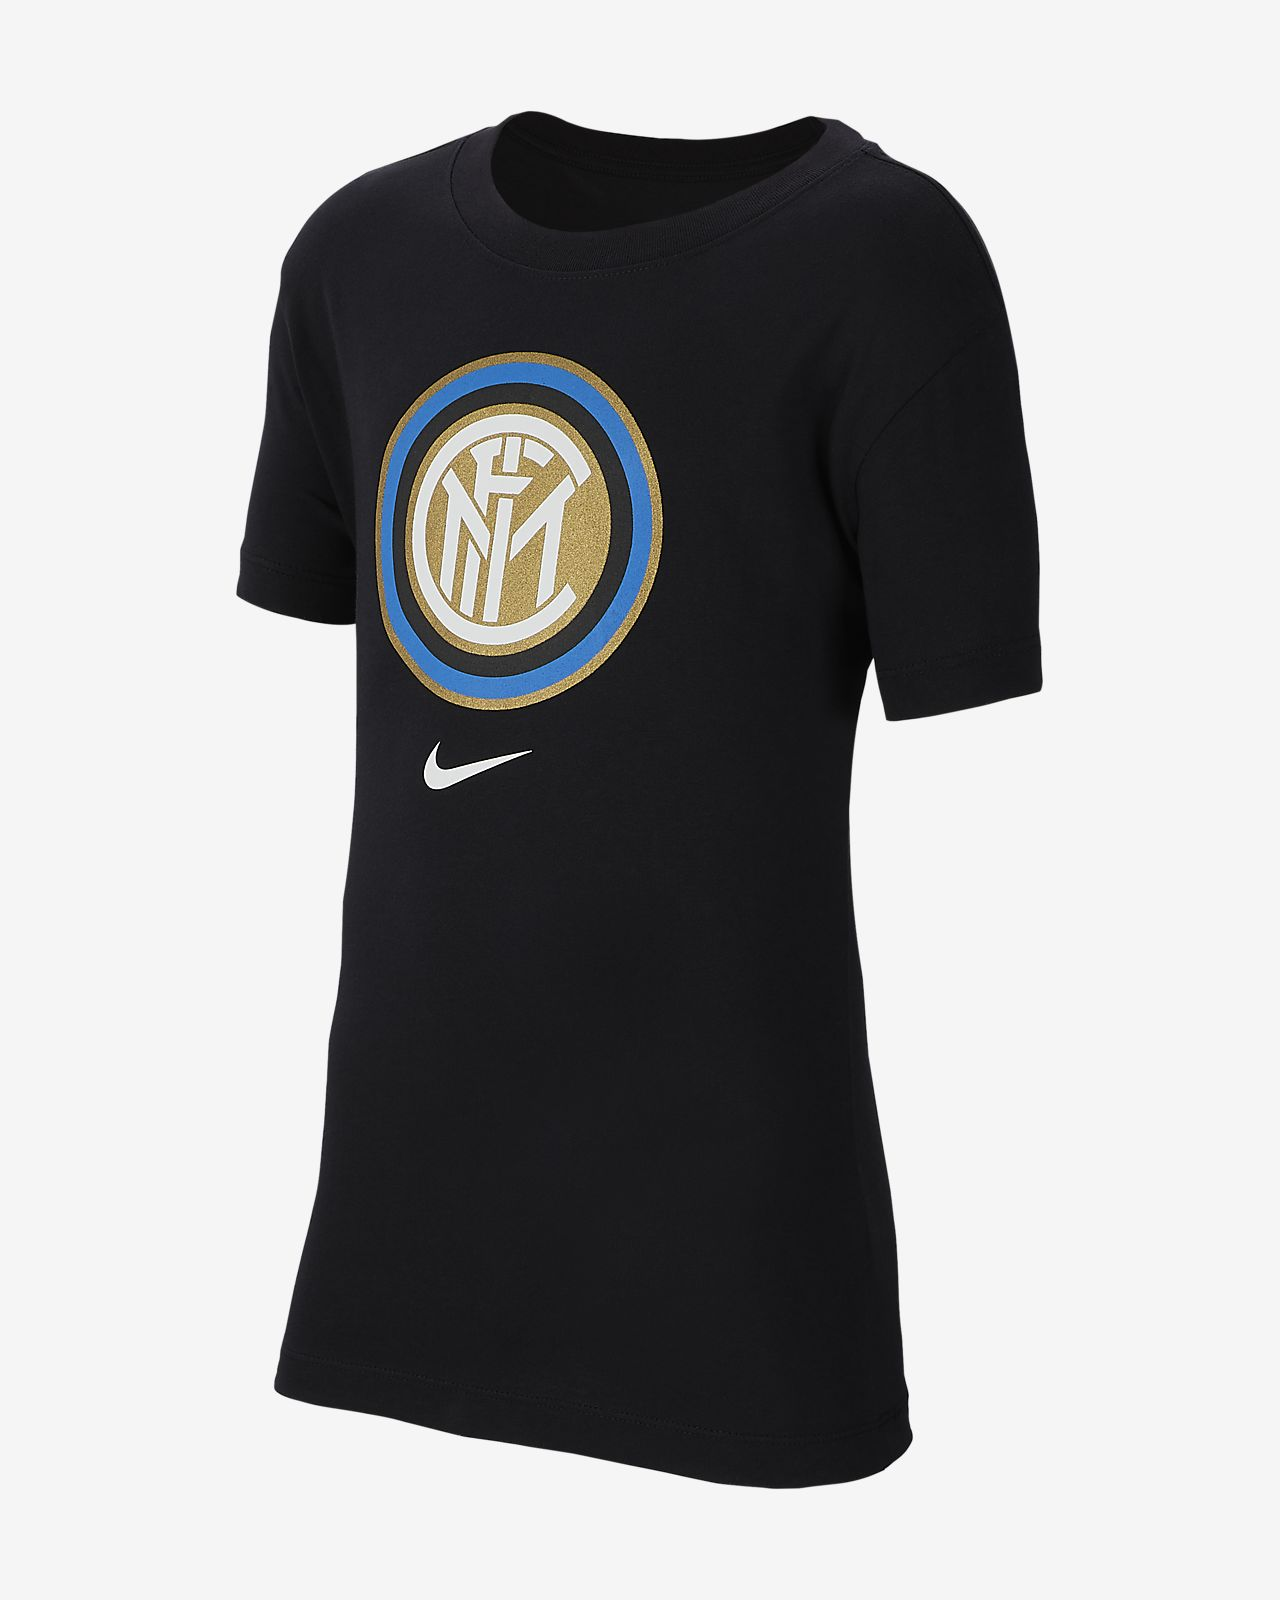 Inter Milan fotball-T-skjorte for store barn